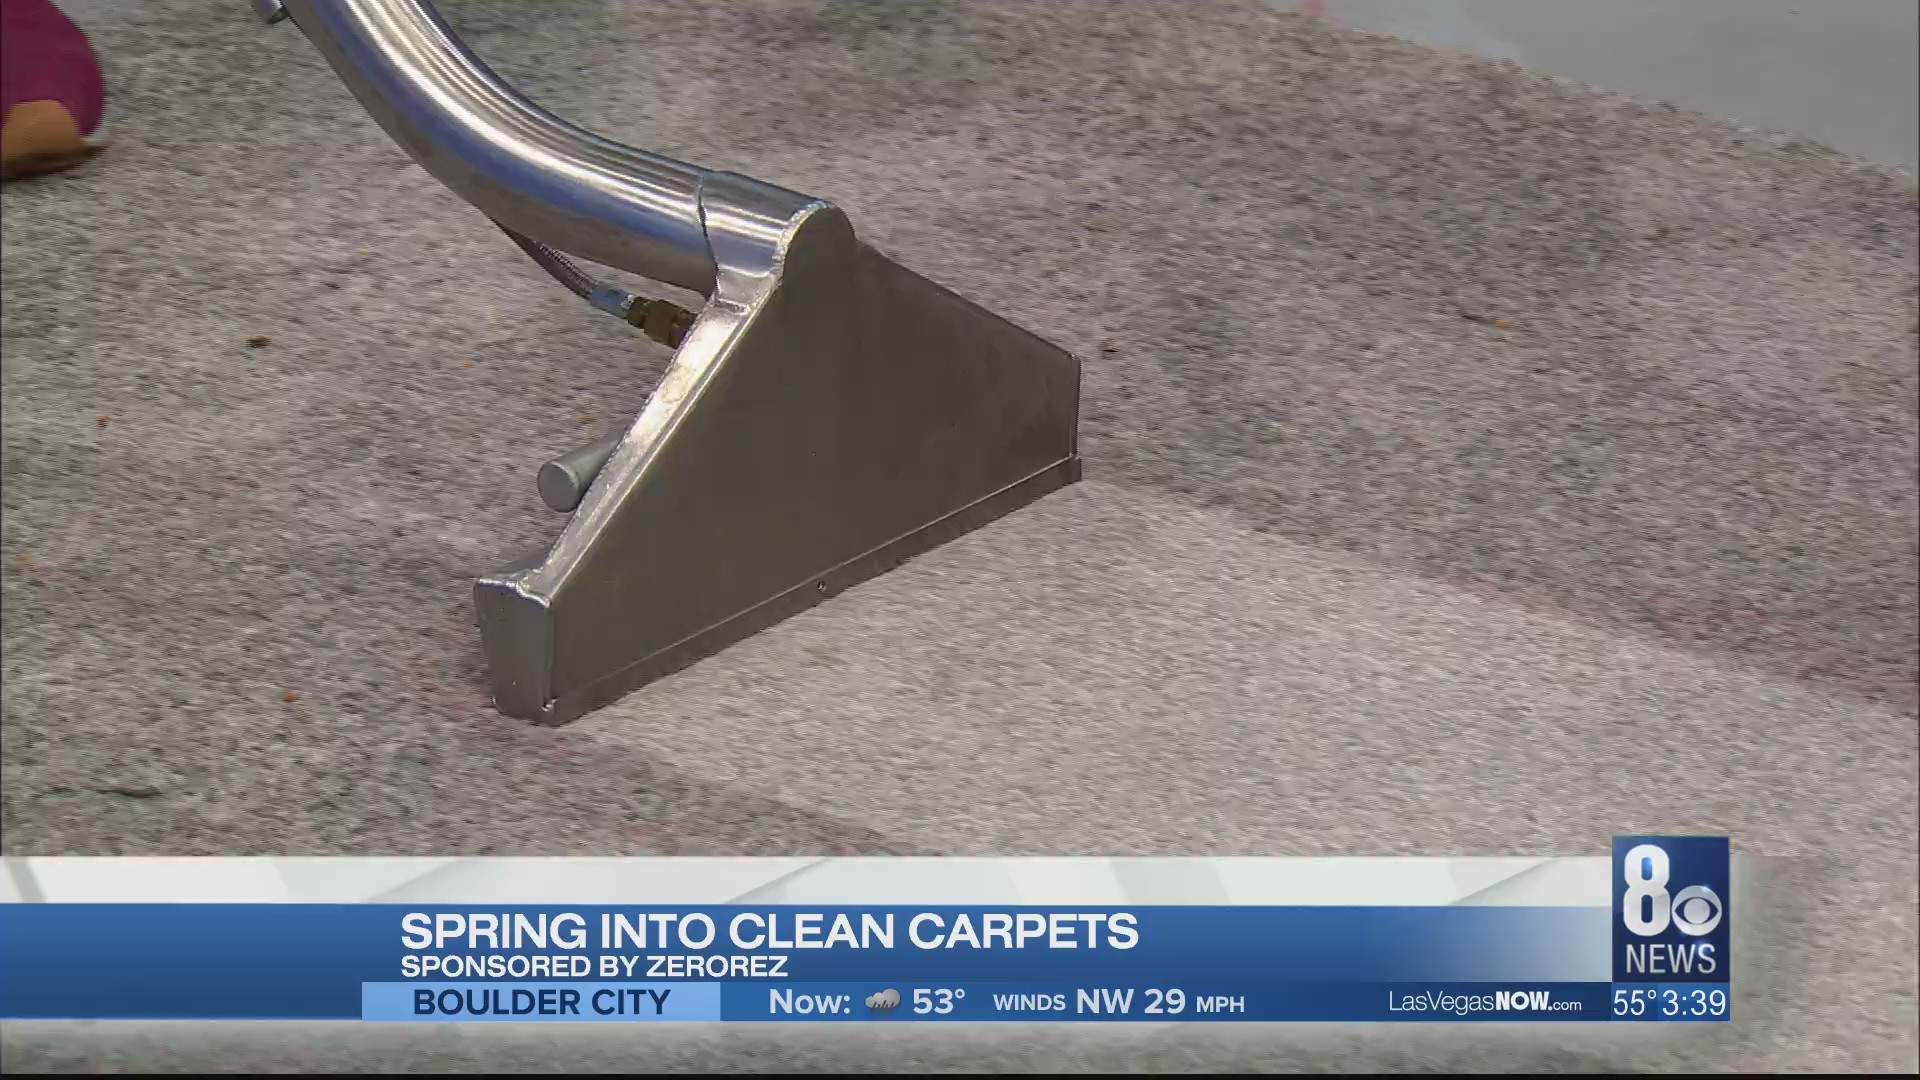 Spring into clean carpets with Zerorez